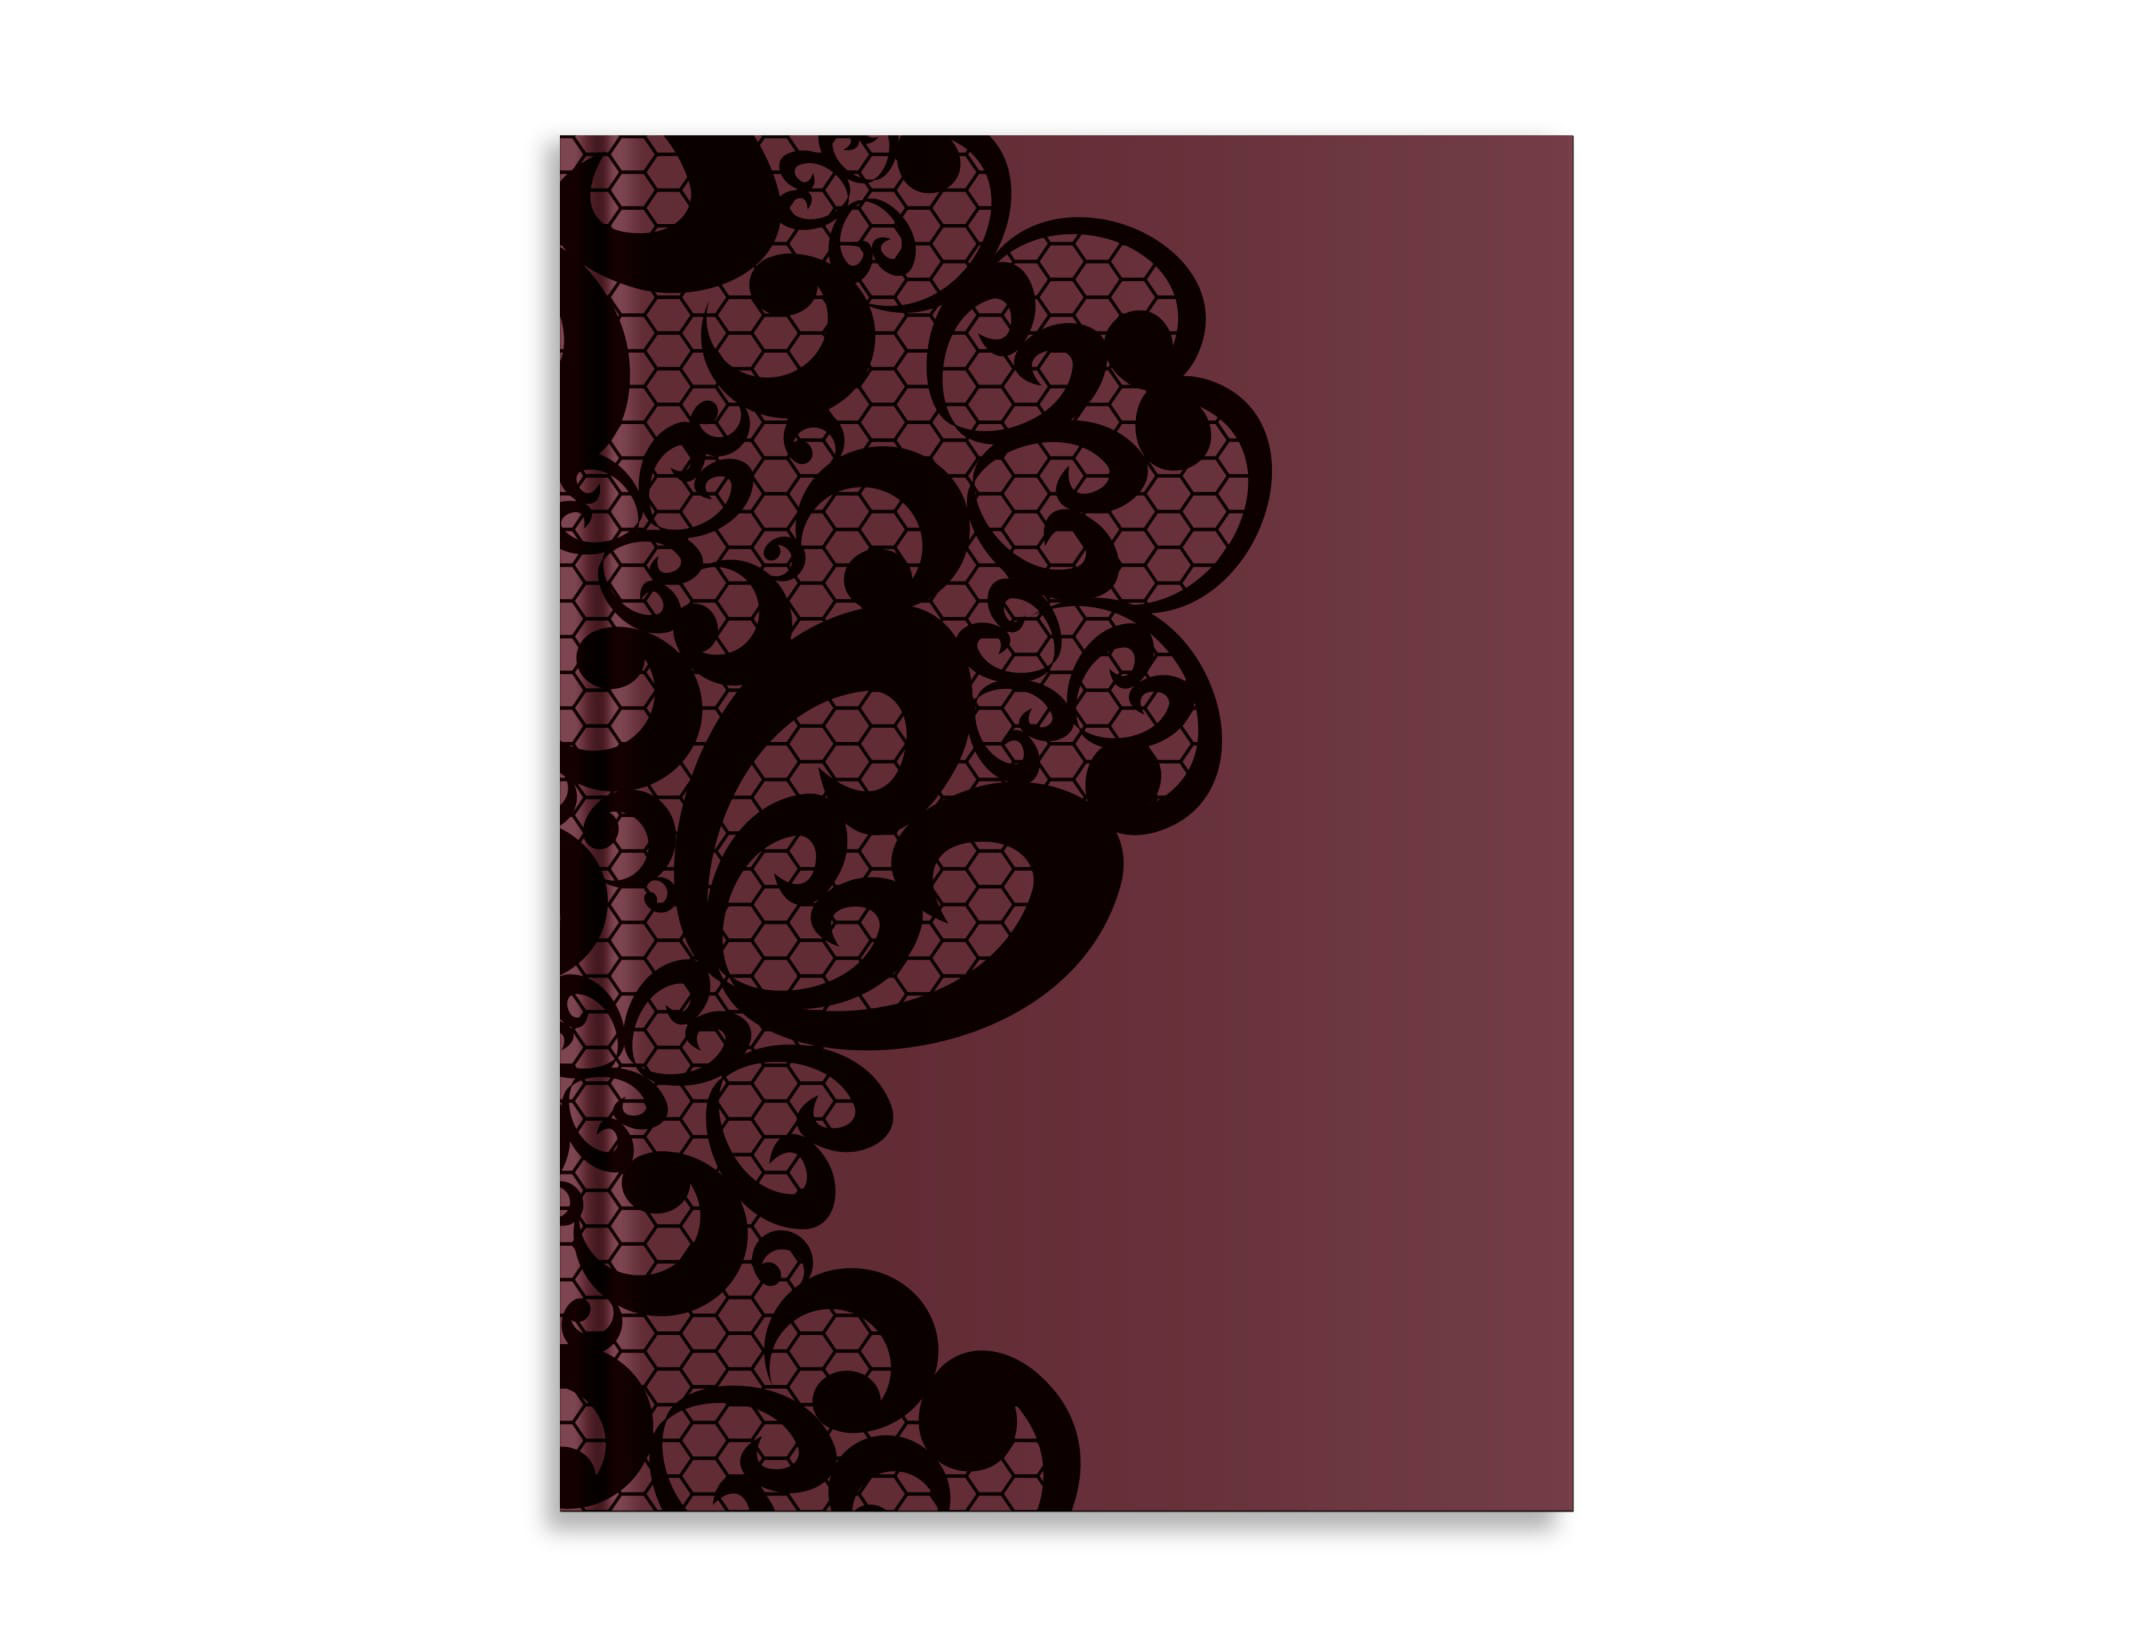 Belvedere Lace Burgandy Notebook 7X9.5 Inch